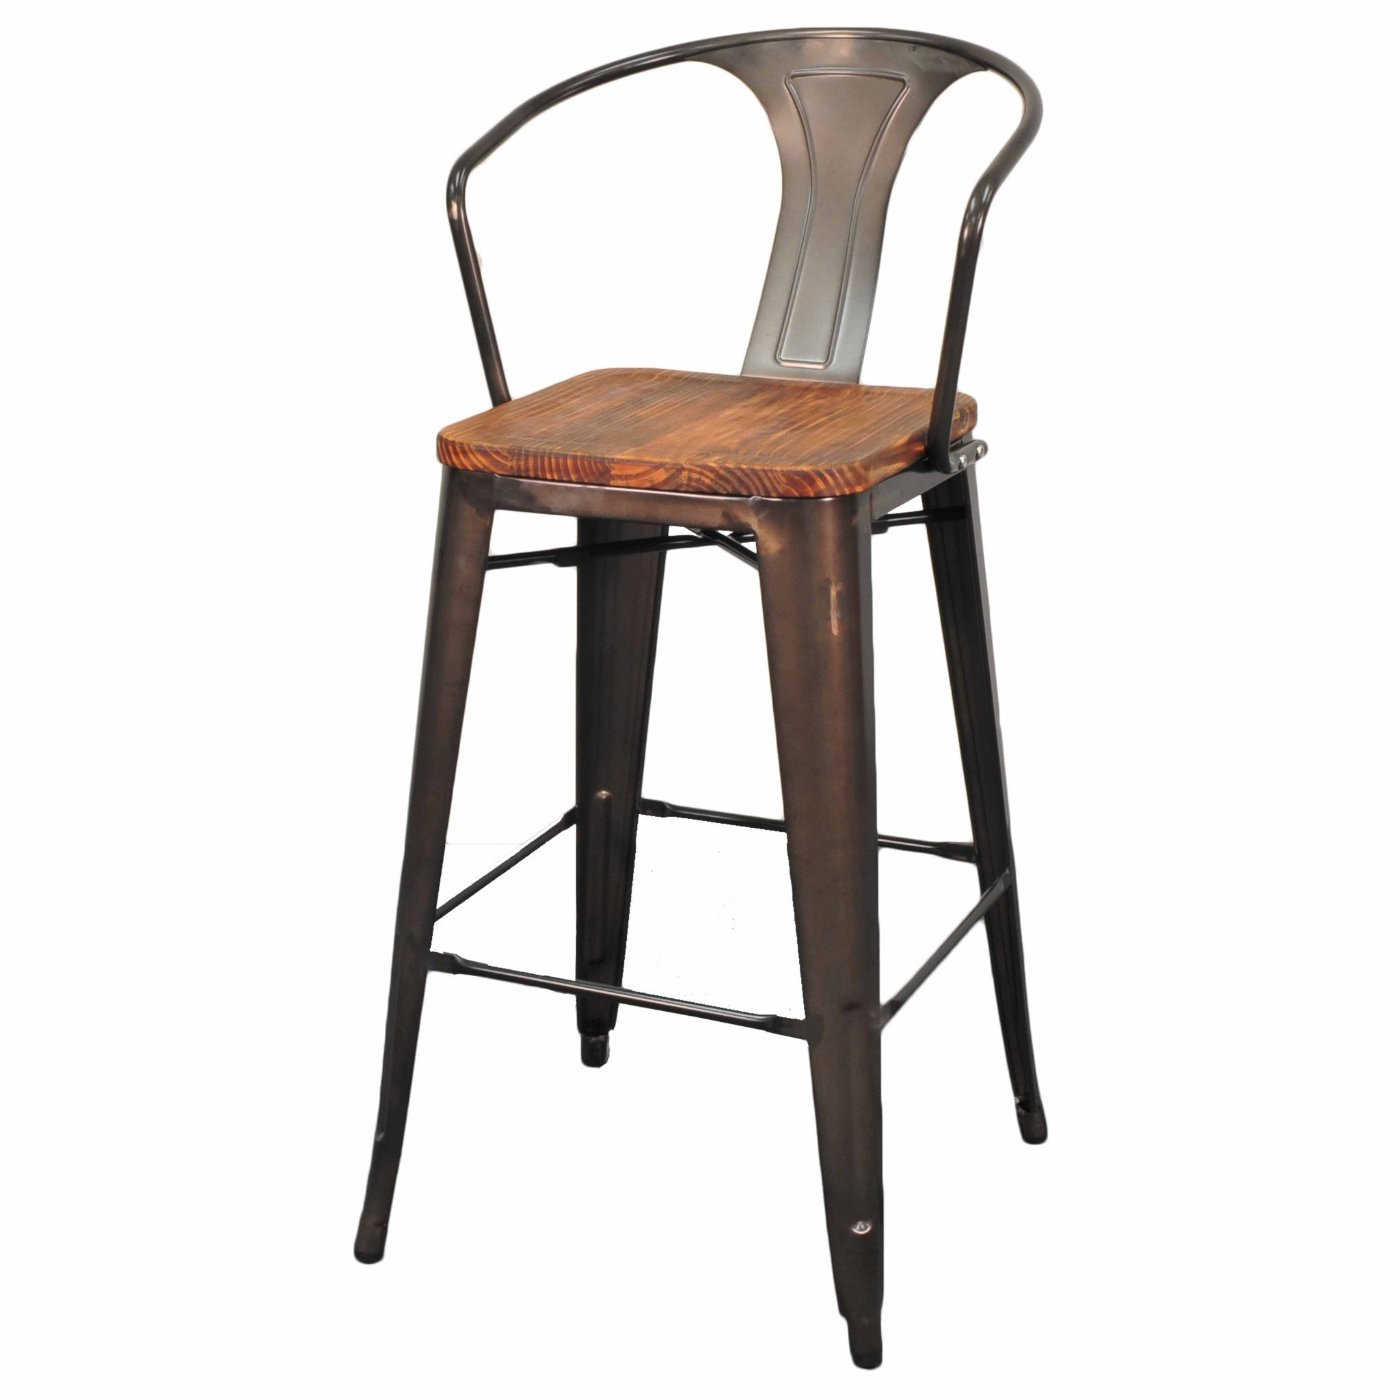 Grand Metal Bar Chair Set of 4 GUNMETAL – Apt2B